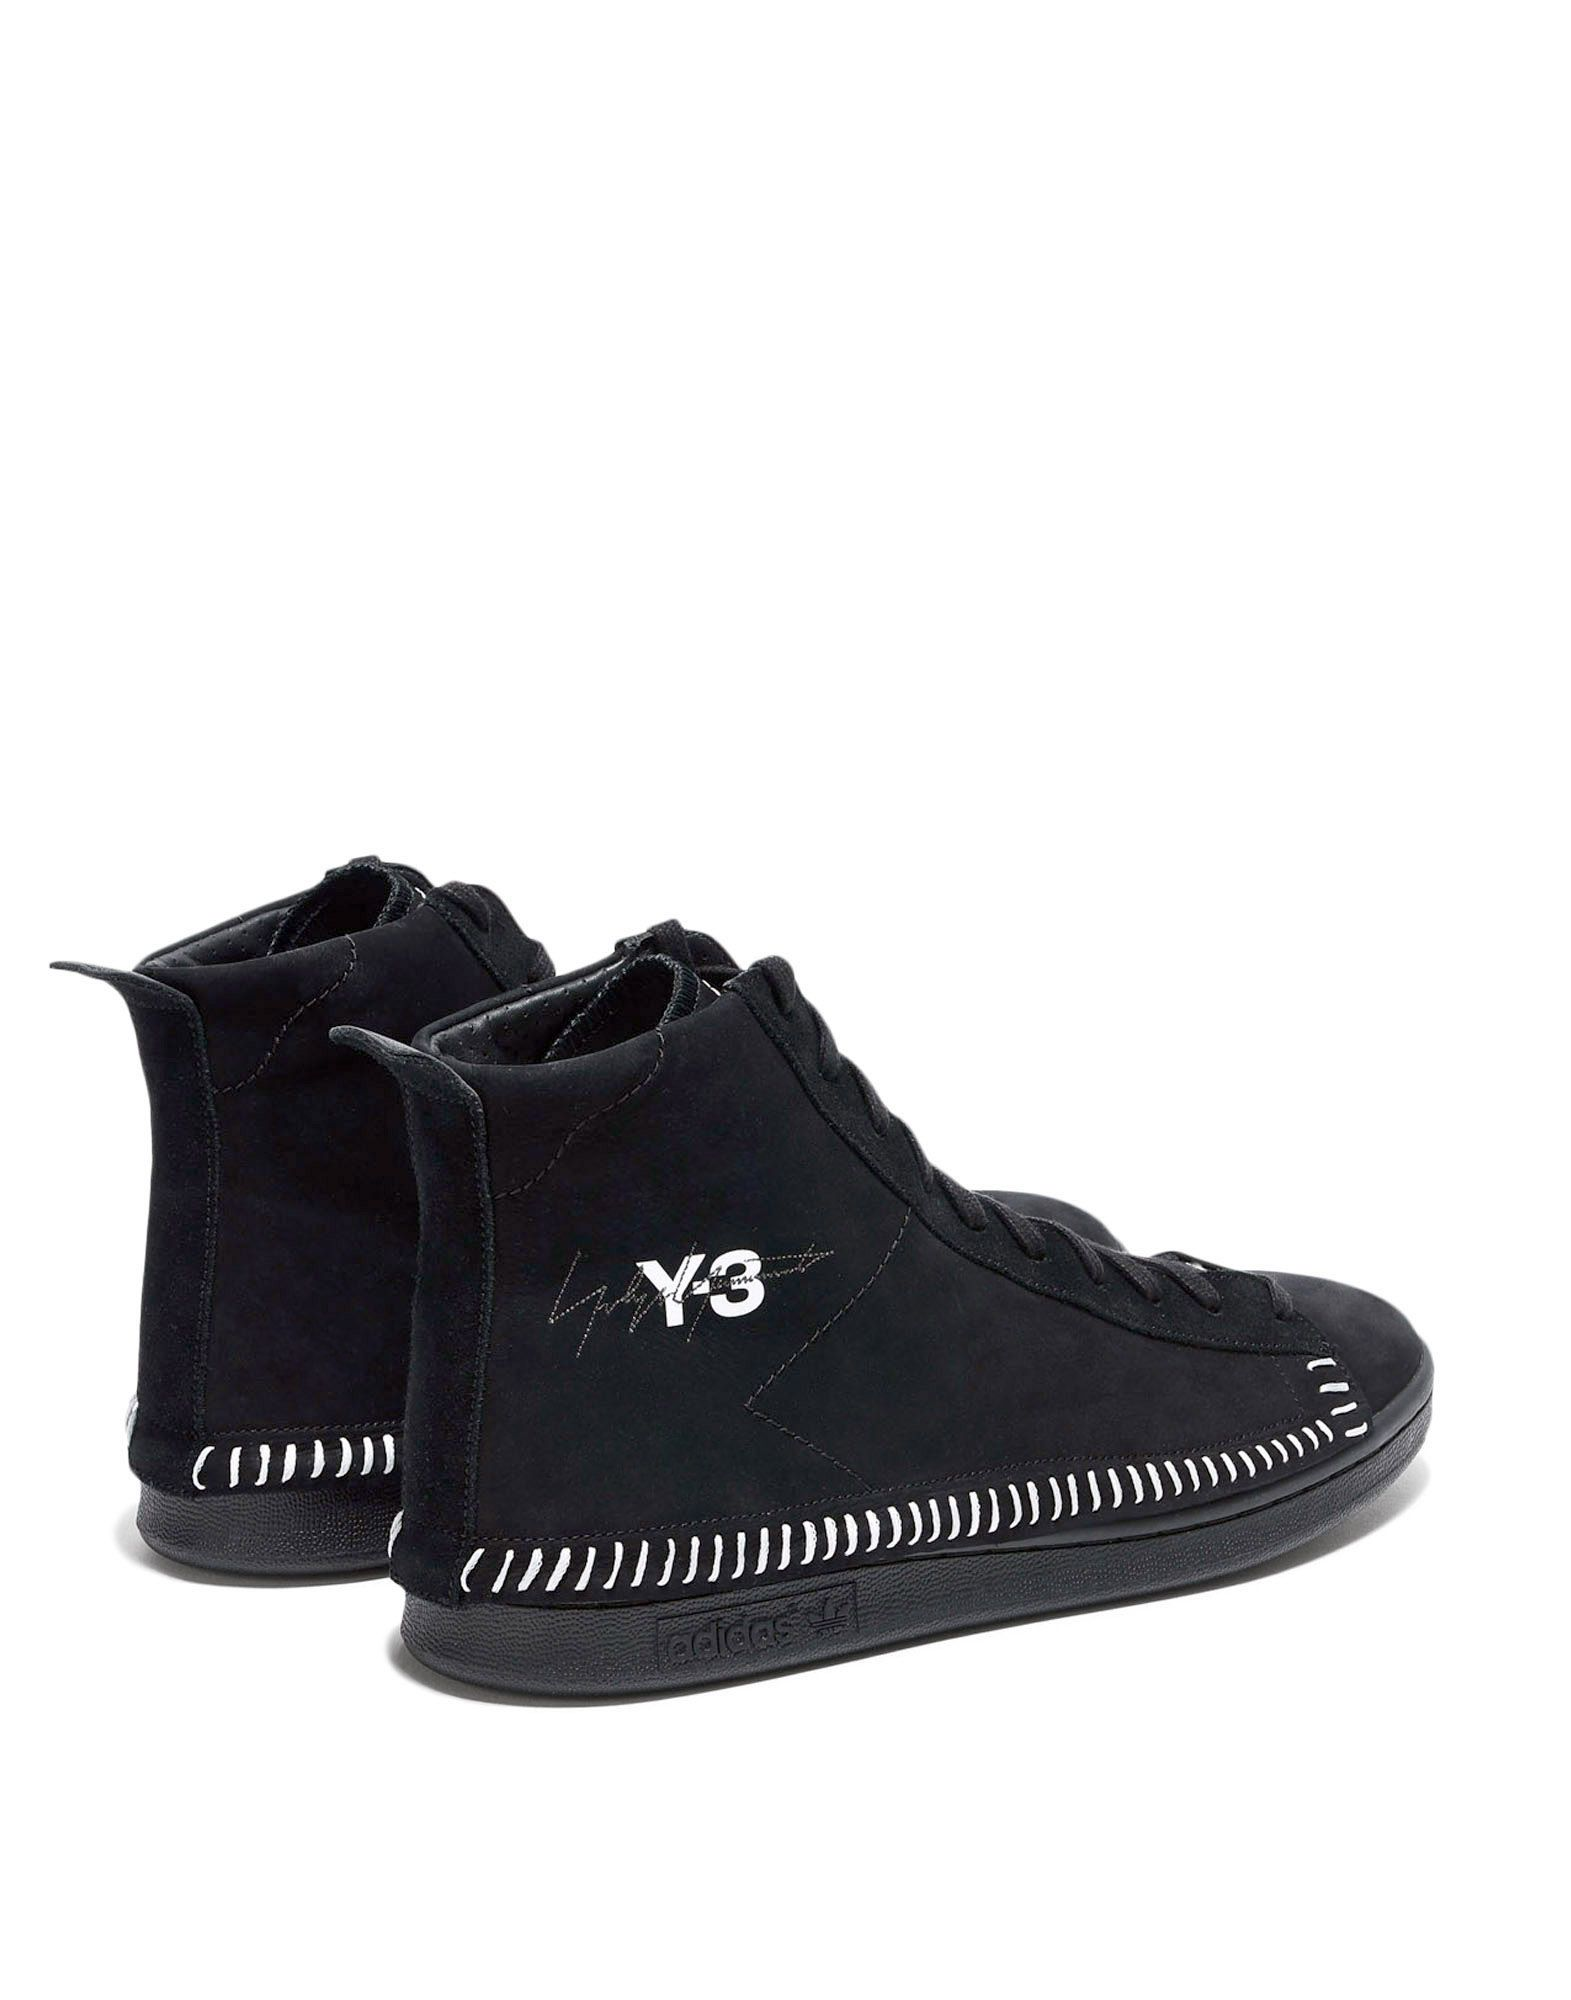 Y-3 Y-3 Bynder High High-top sneakers E c